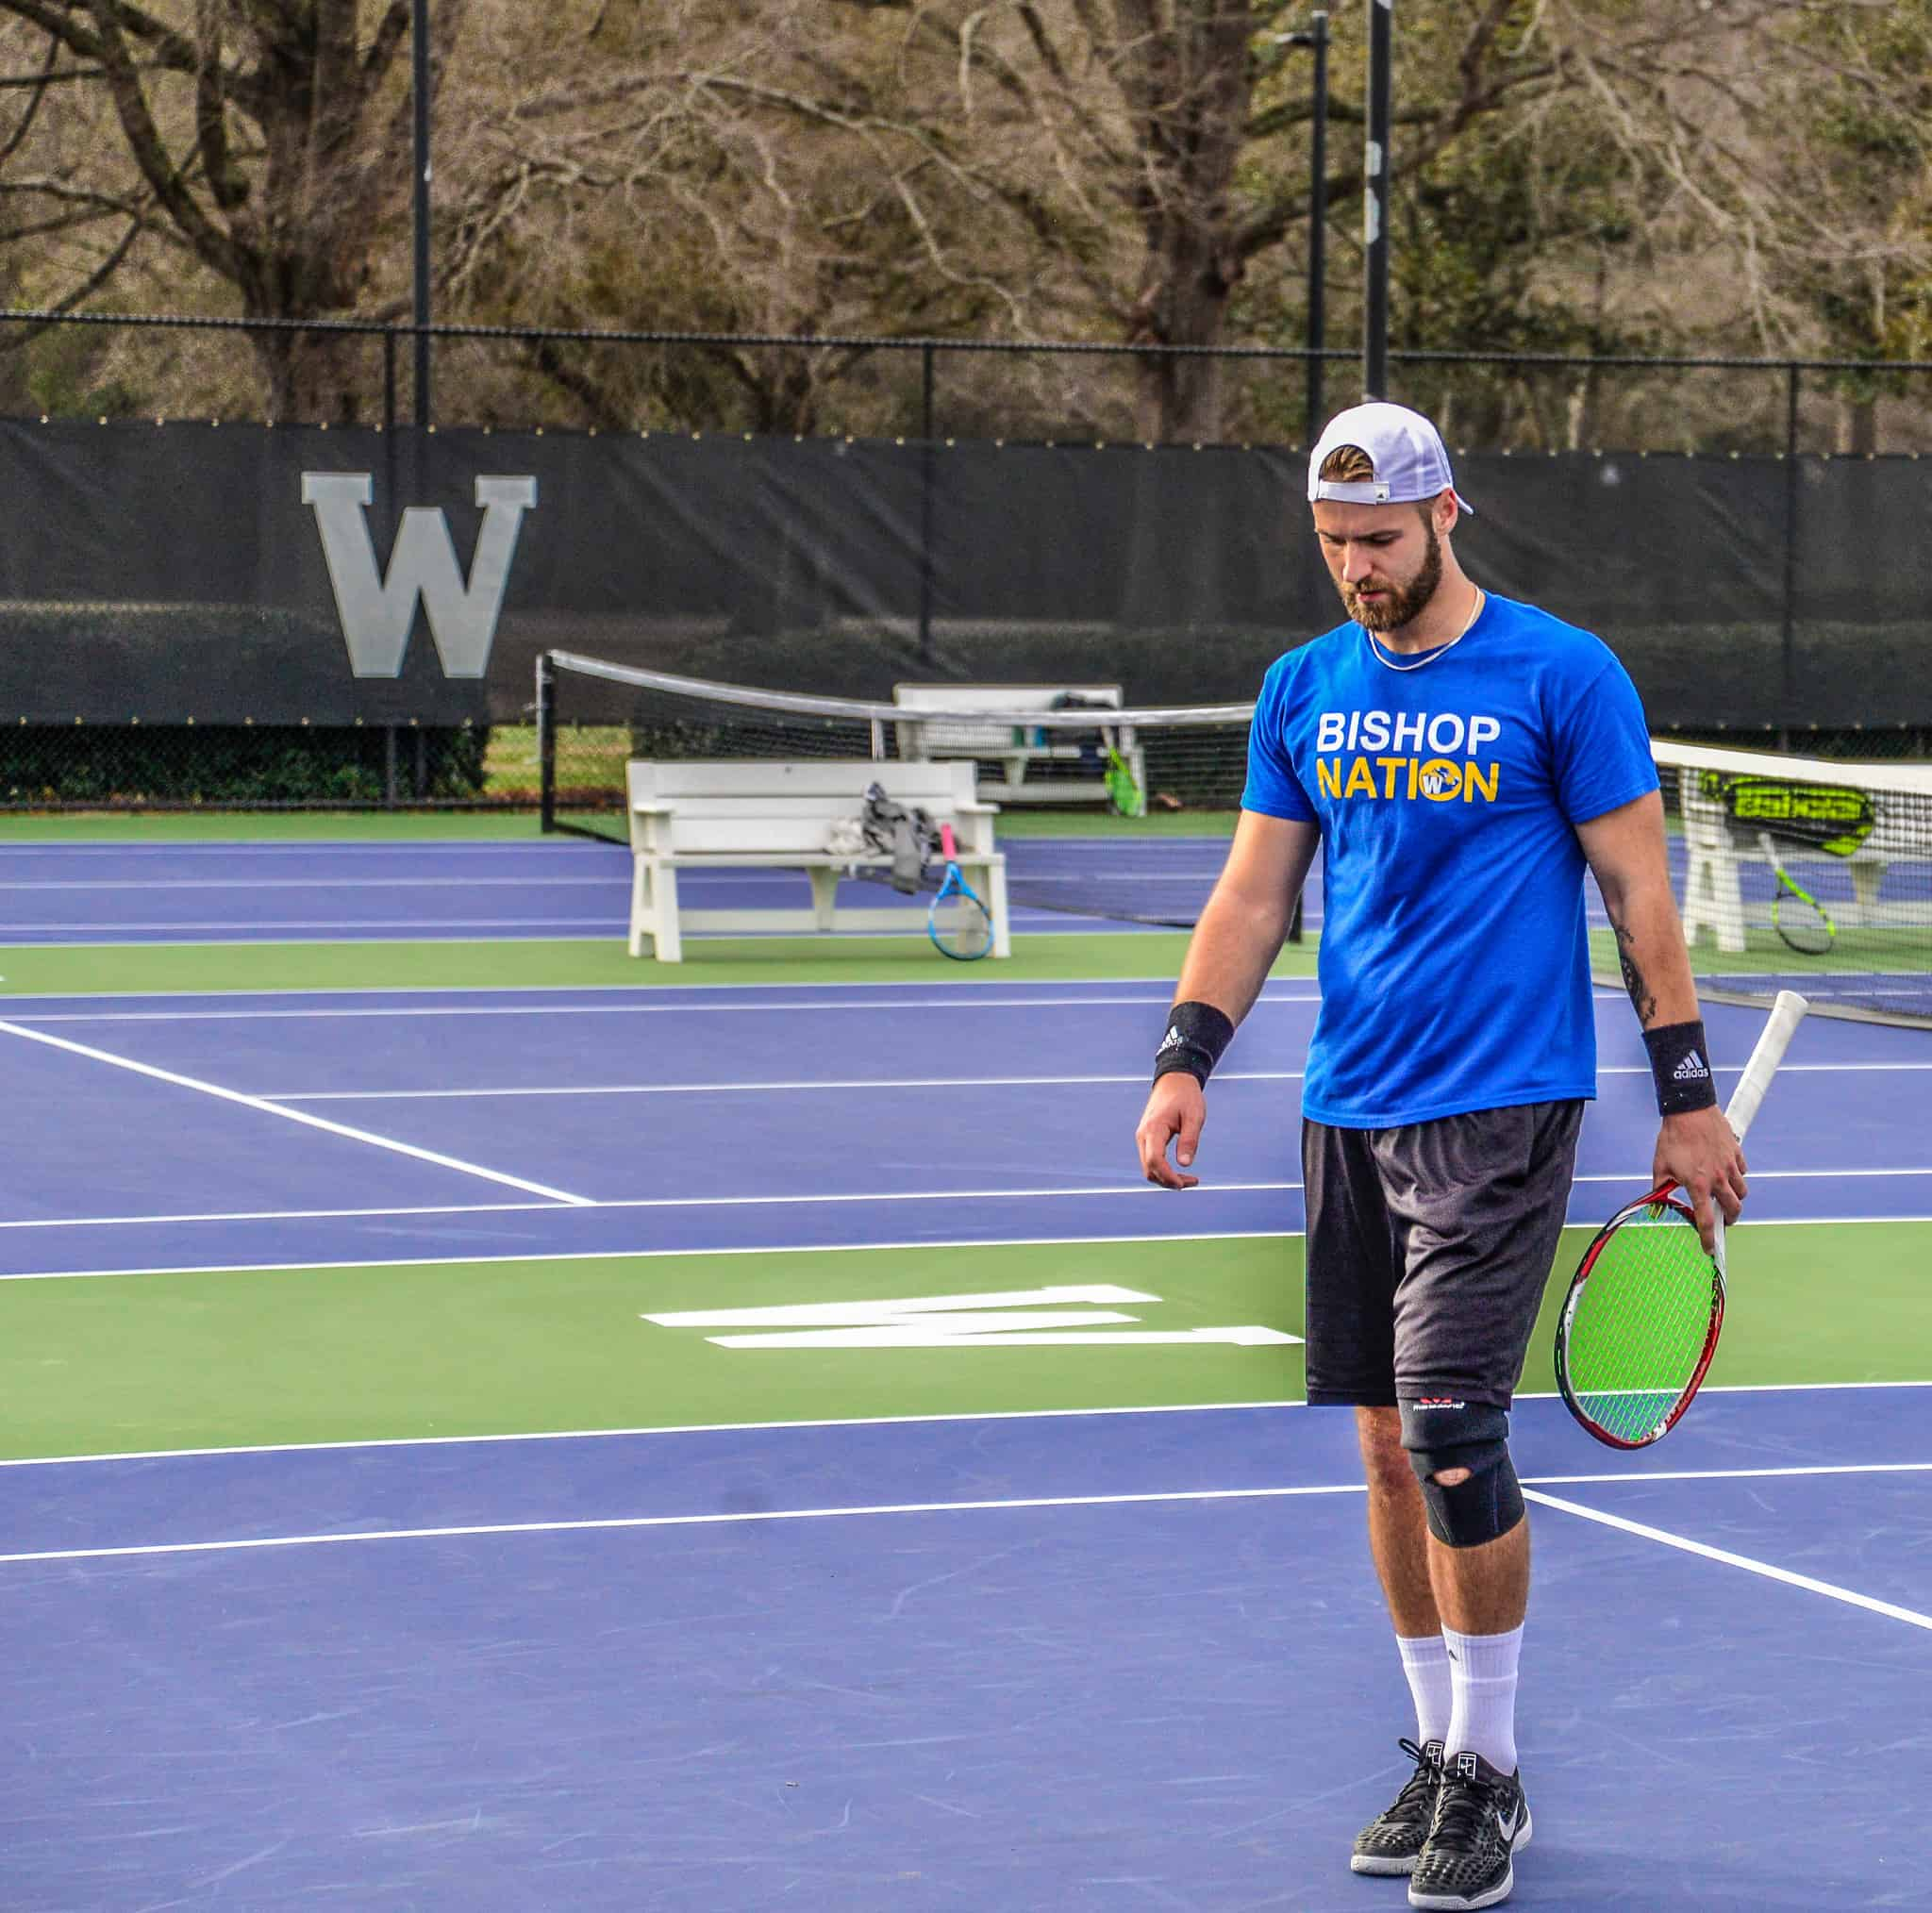 Male tennis player in blue Bishop Nation shirt holding a racket